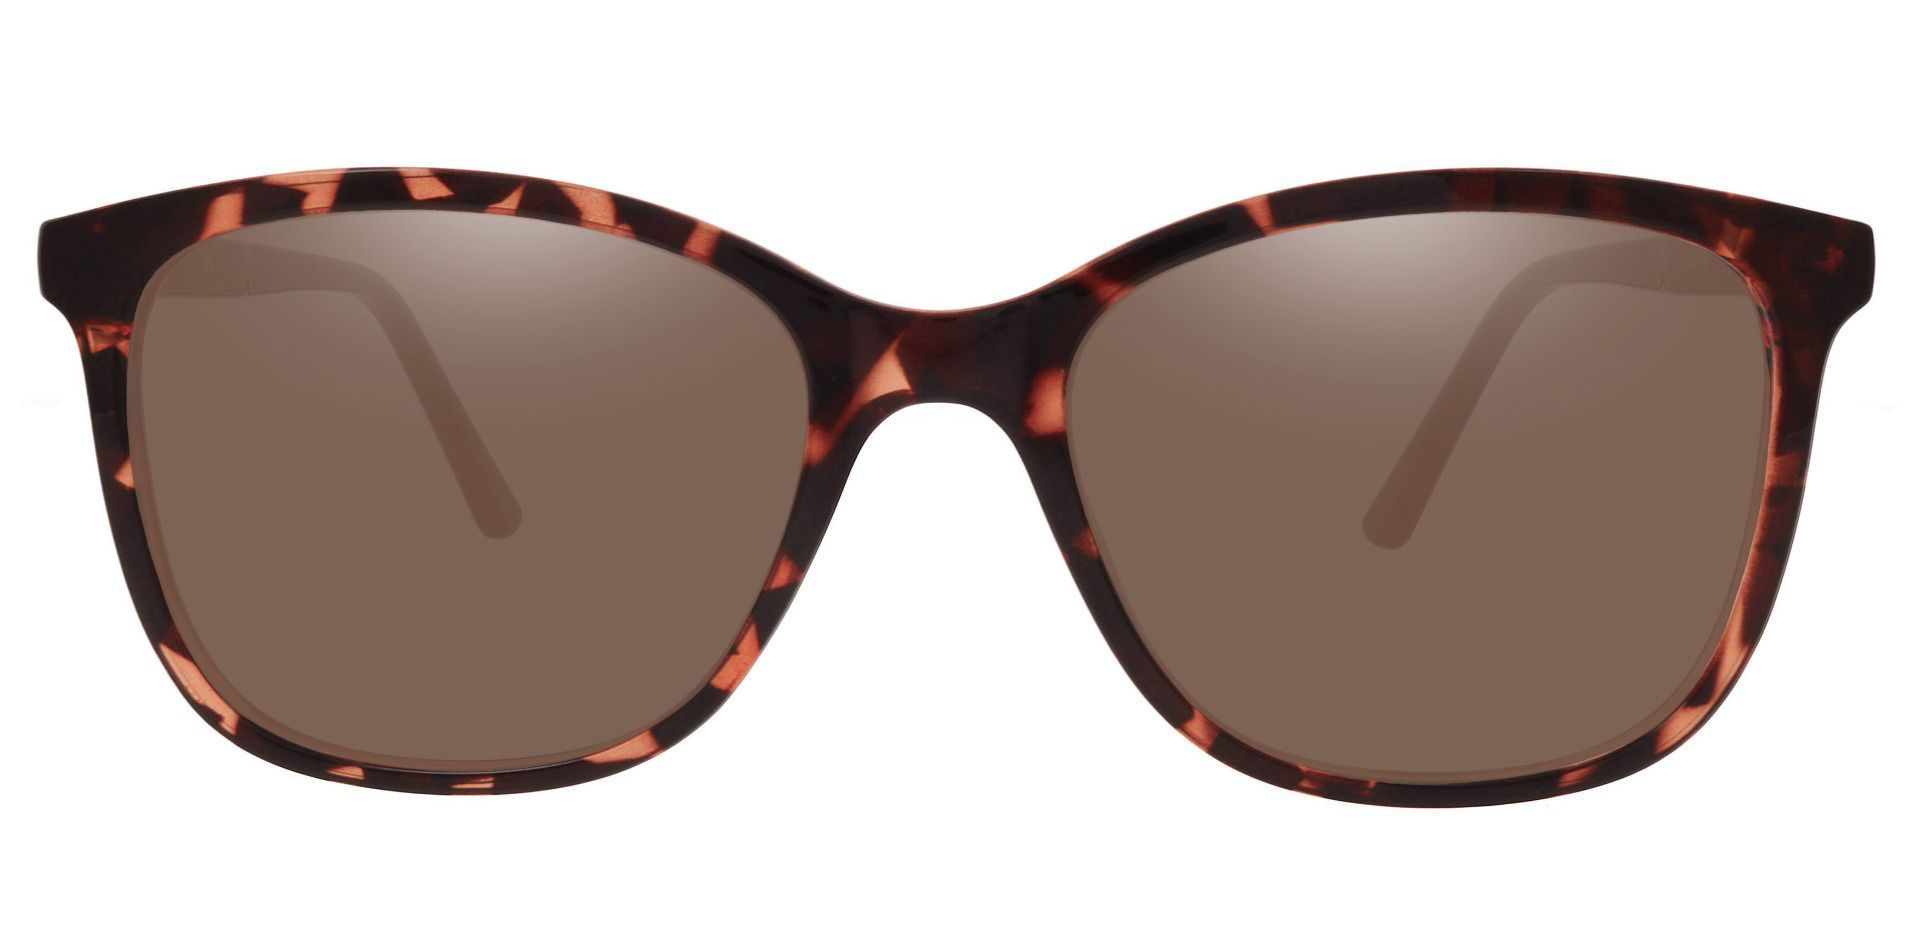 Halpin Square Prescription Sunglasses - Tortoise Frame With Brown Lenses